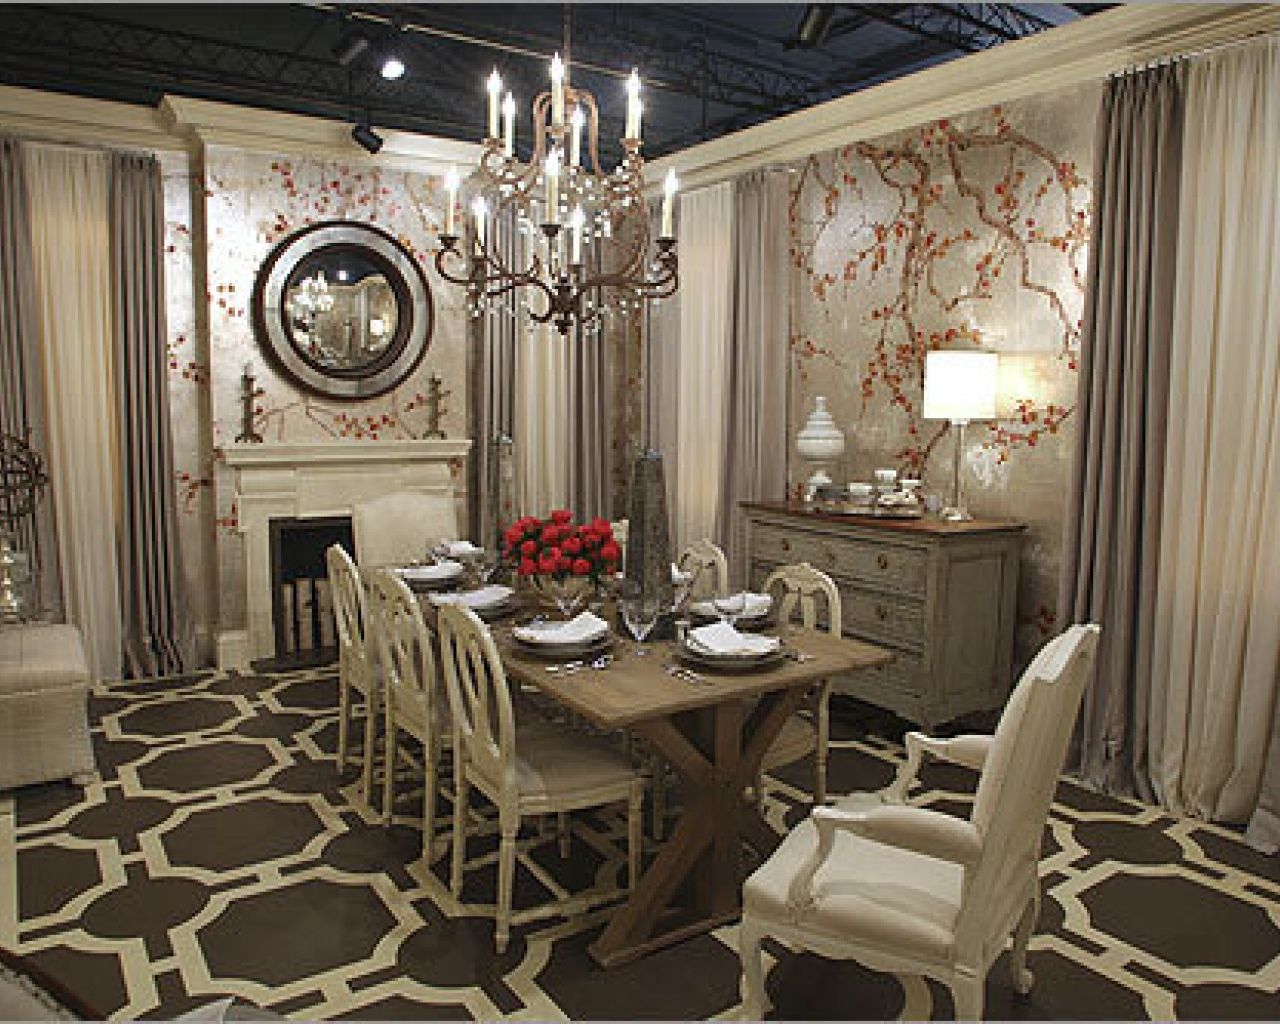 Antique Dining Room Ideas with Full of Earthy Hues Application  Ideas 4 Homes